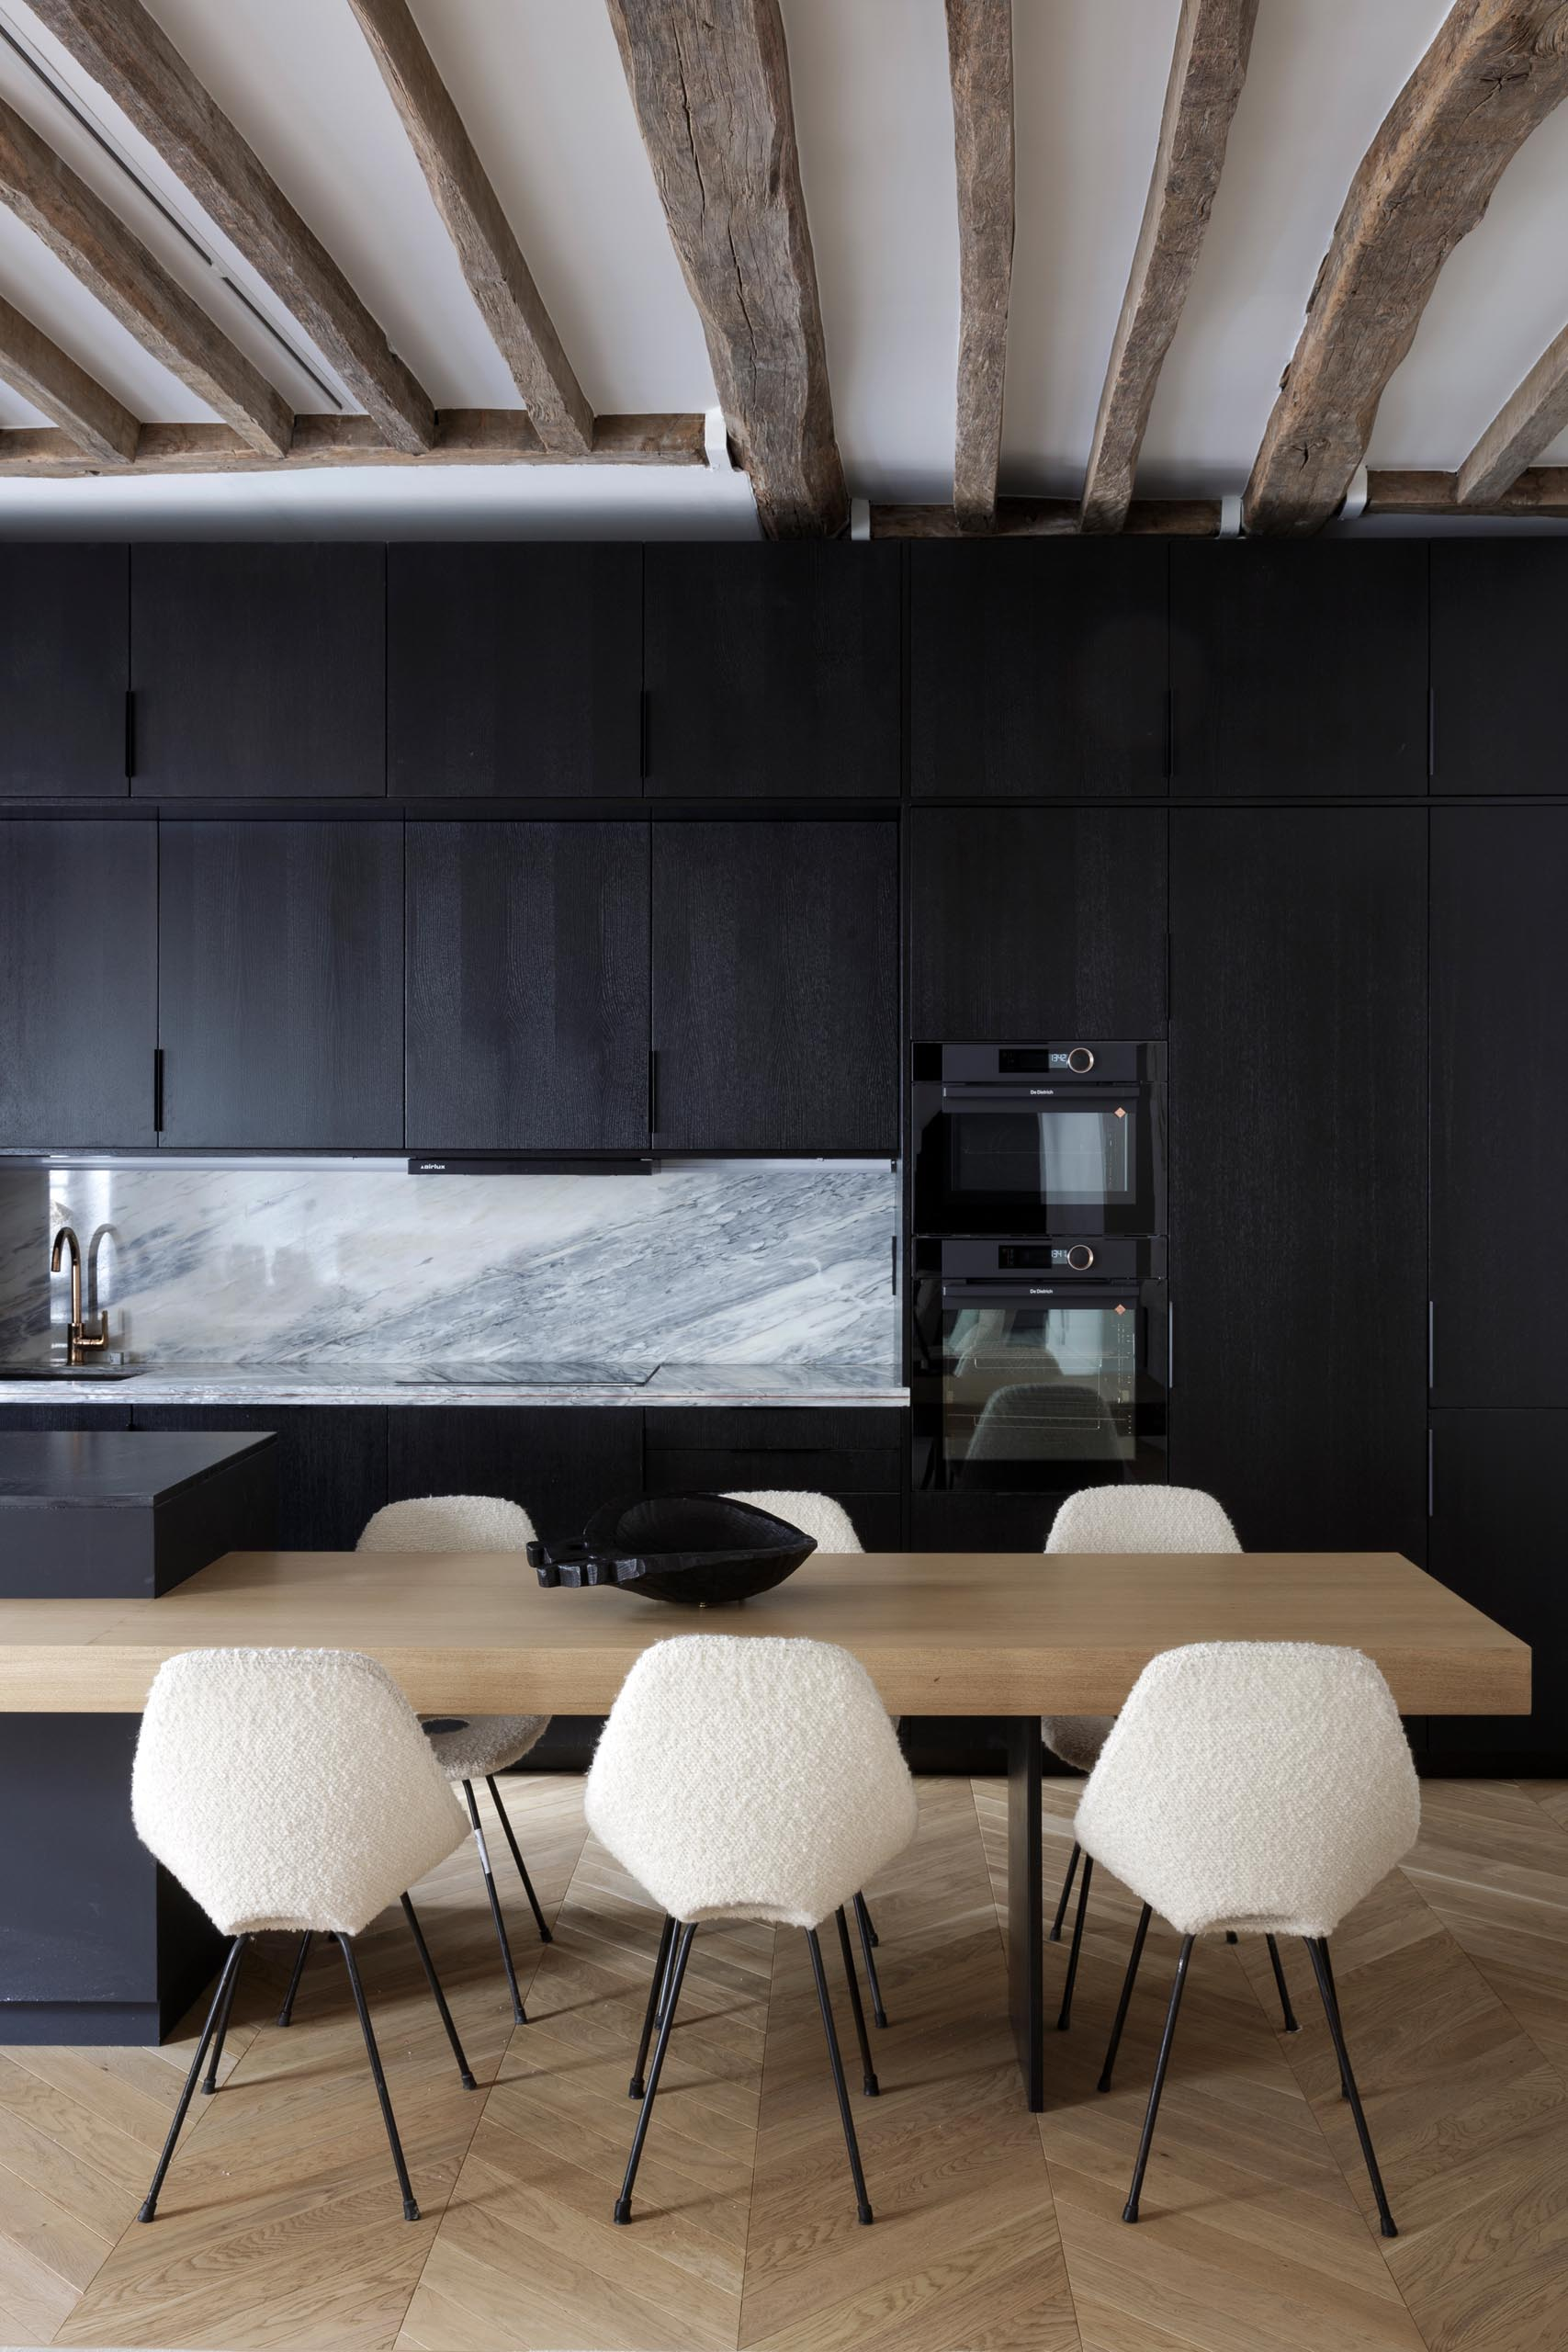 A modern matte black kitchen with a black appliances and exposed wood beams.